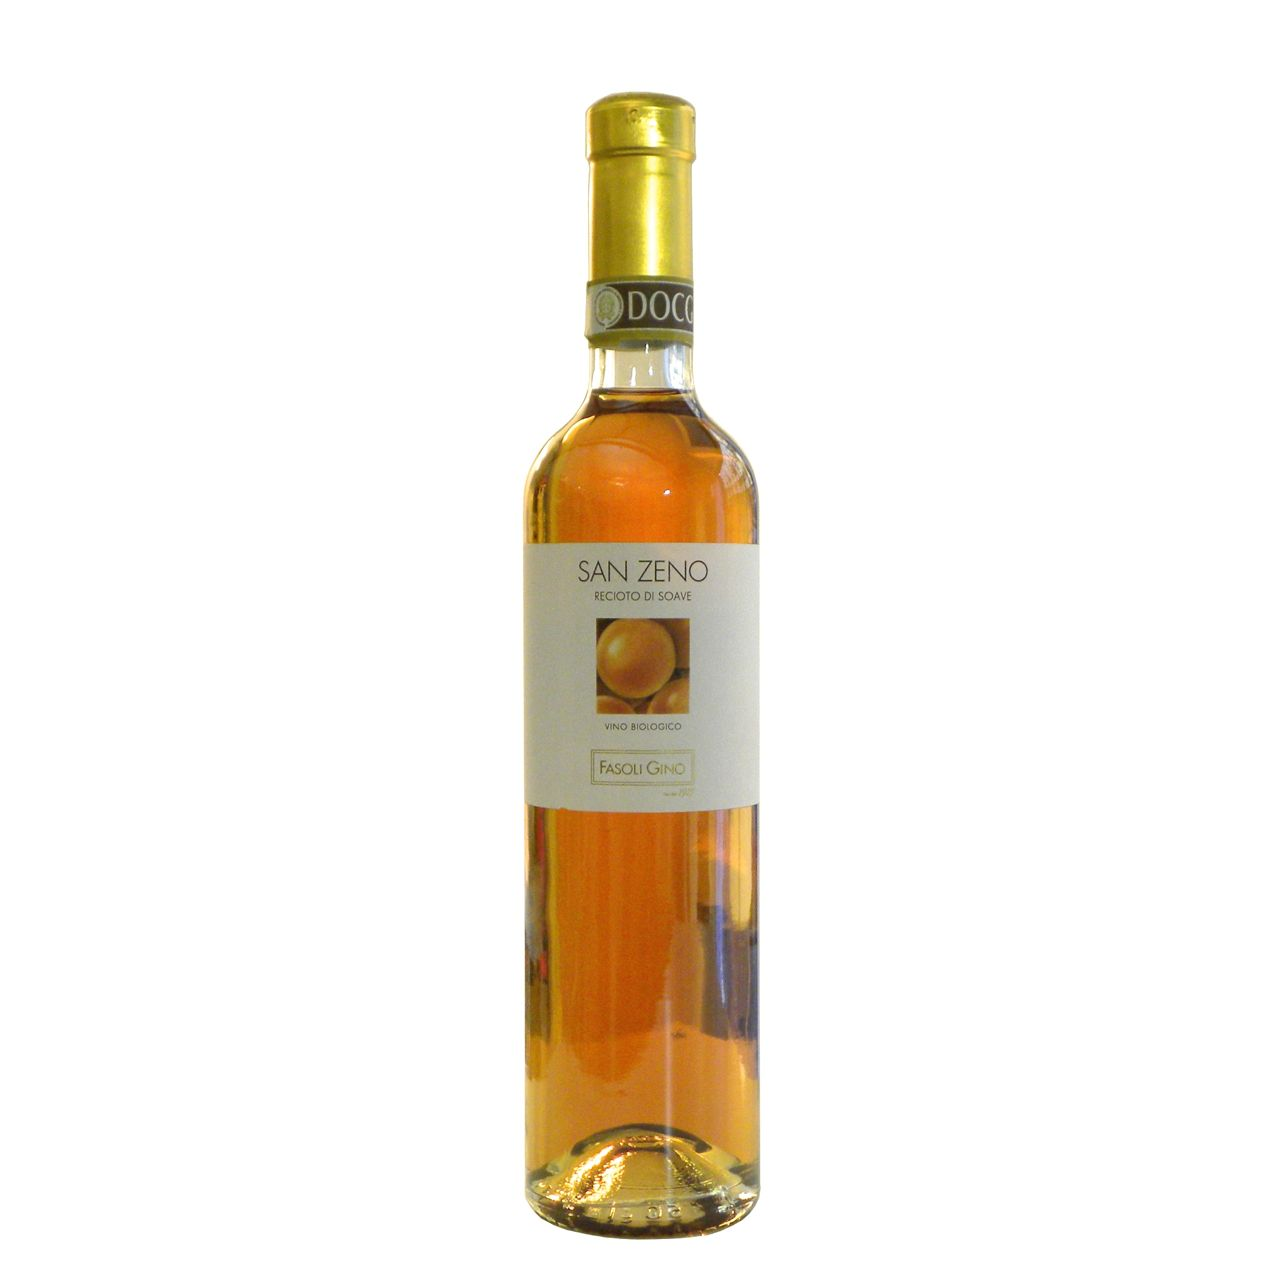 Recioto Biologico Fasoli Gino – Organic Recioto wine Gustorotondo – Italian Food Boutique